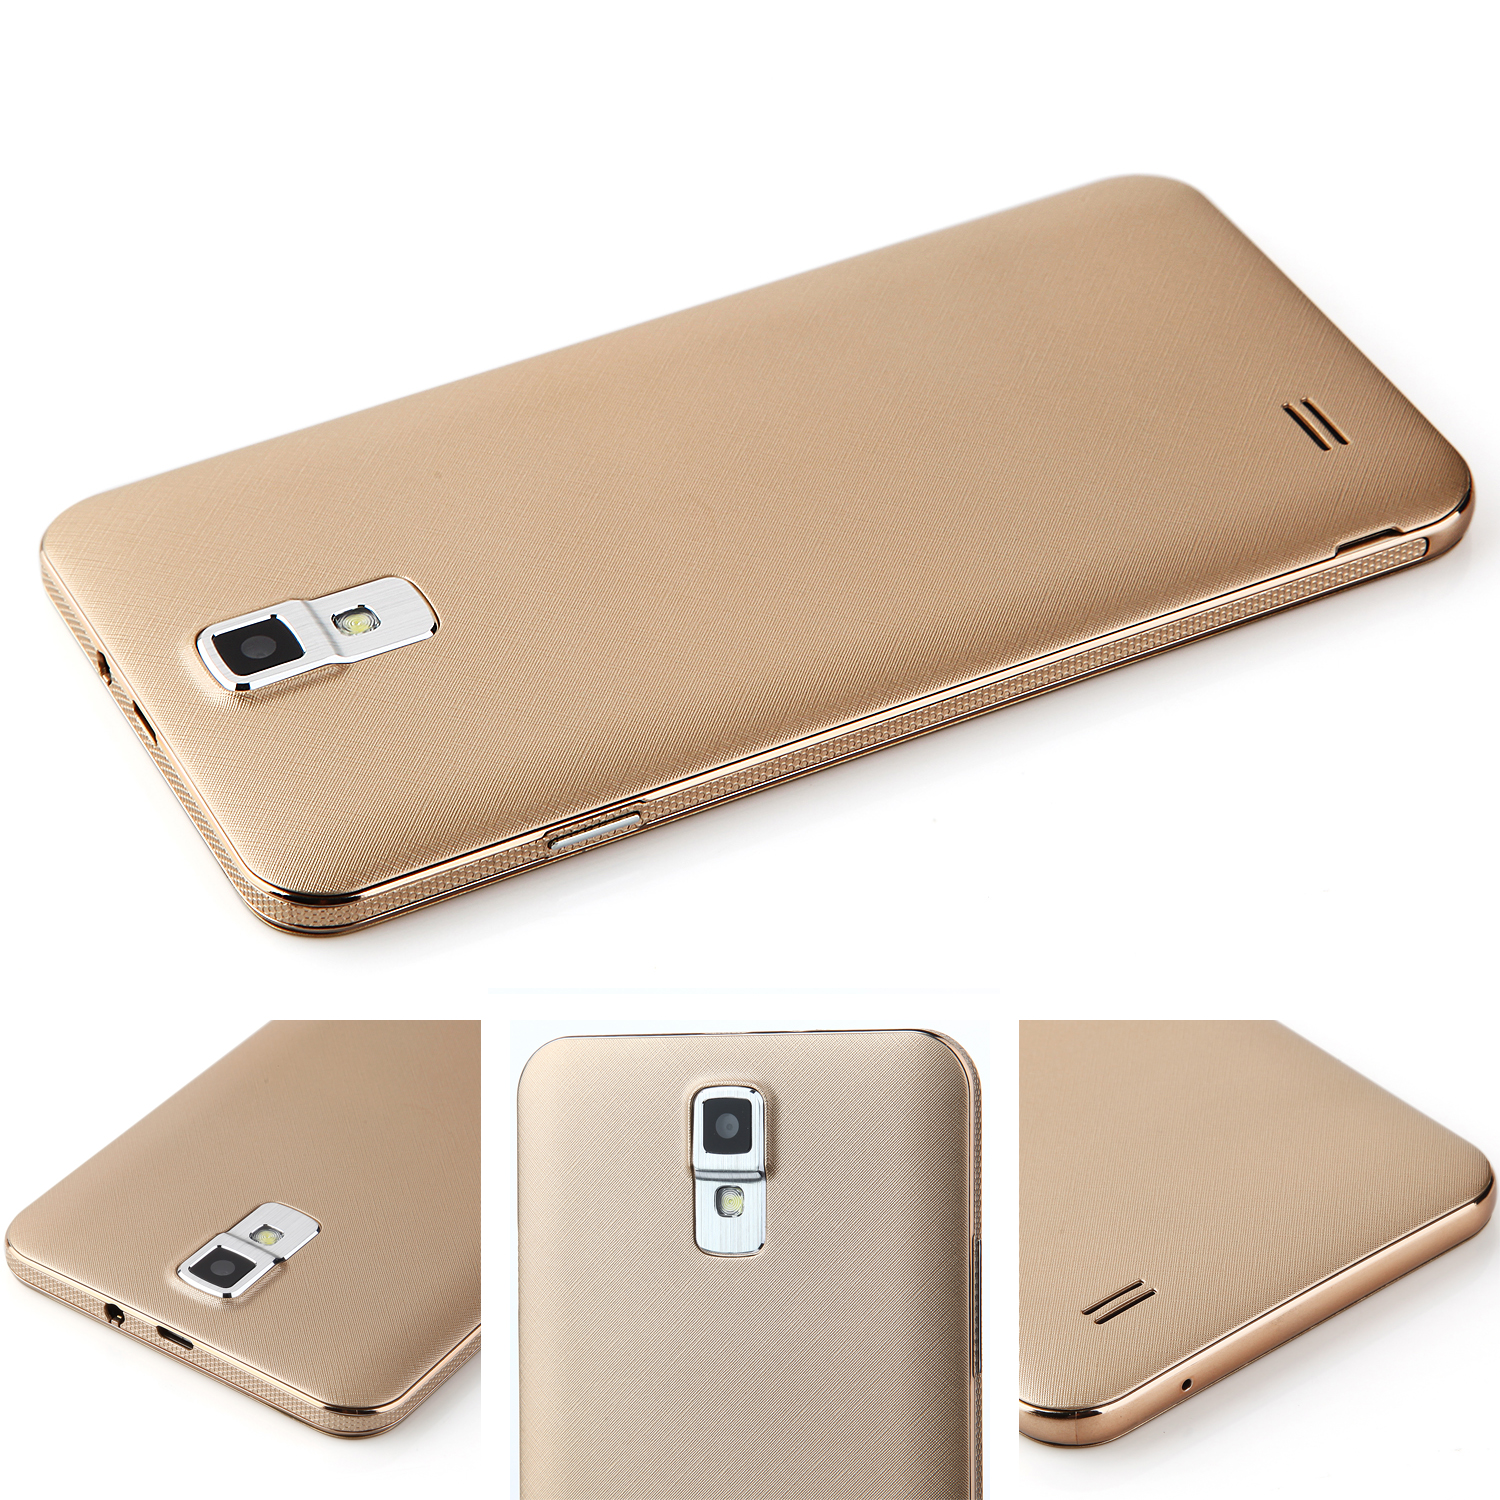 A7 Smartphone 5.5 inch QHD Screen MTK6572W Android 4.4 Smart Wake Gold